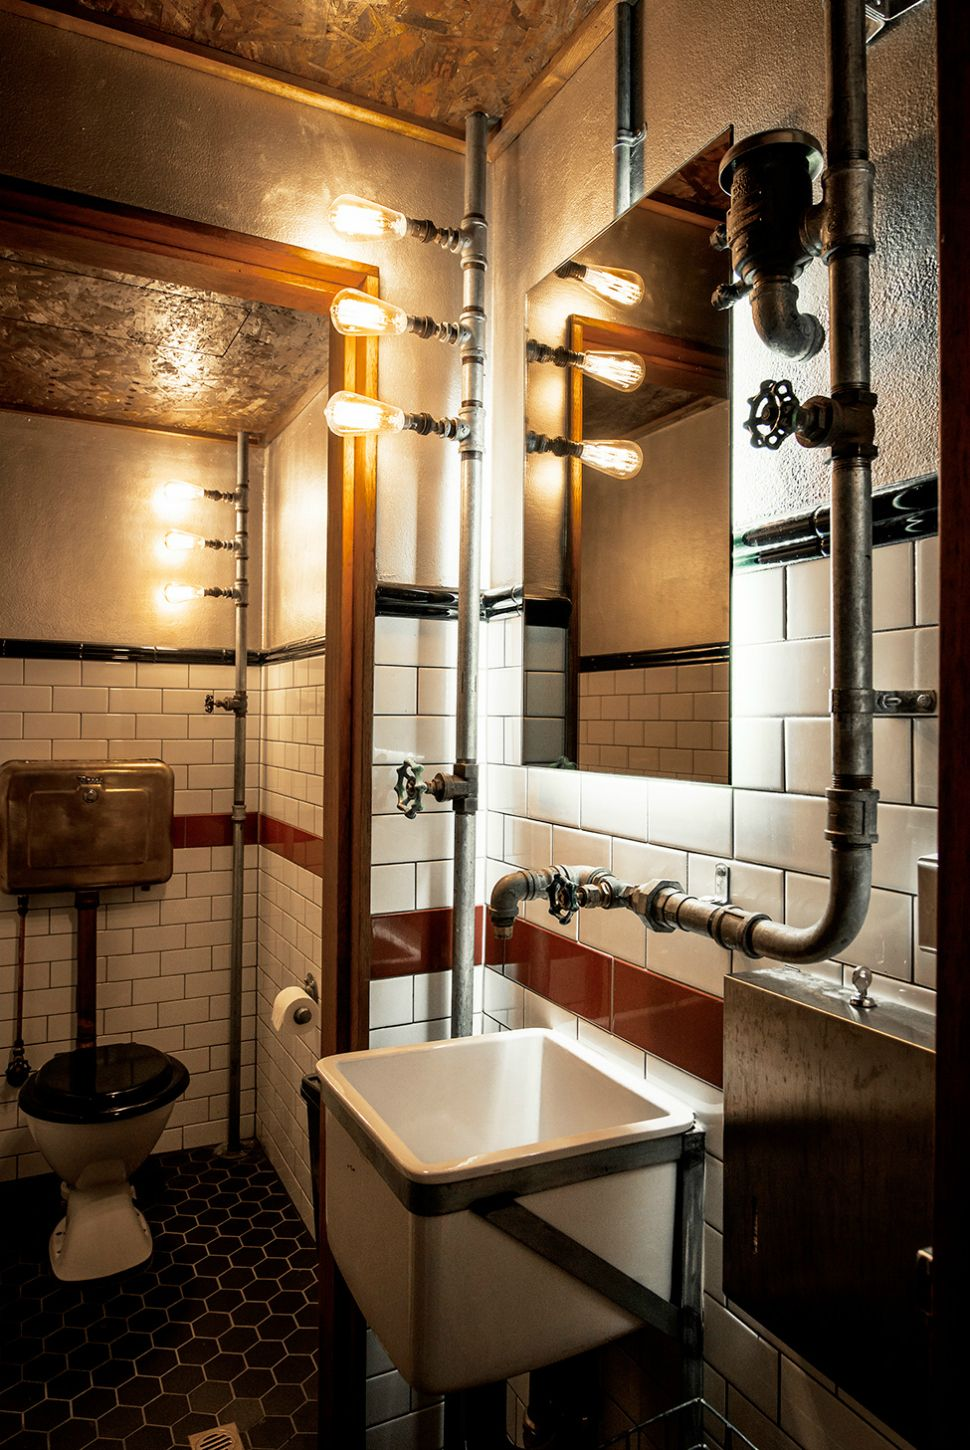 decoración steampunk en baño